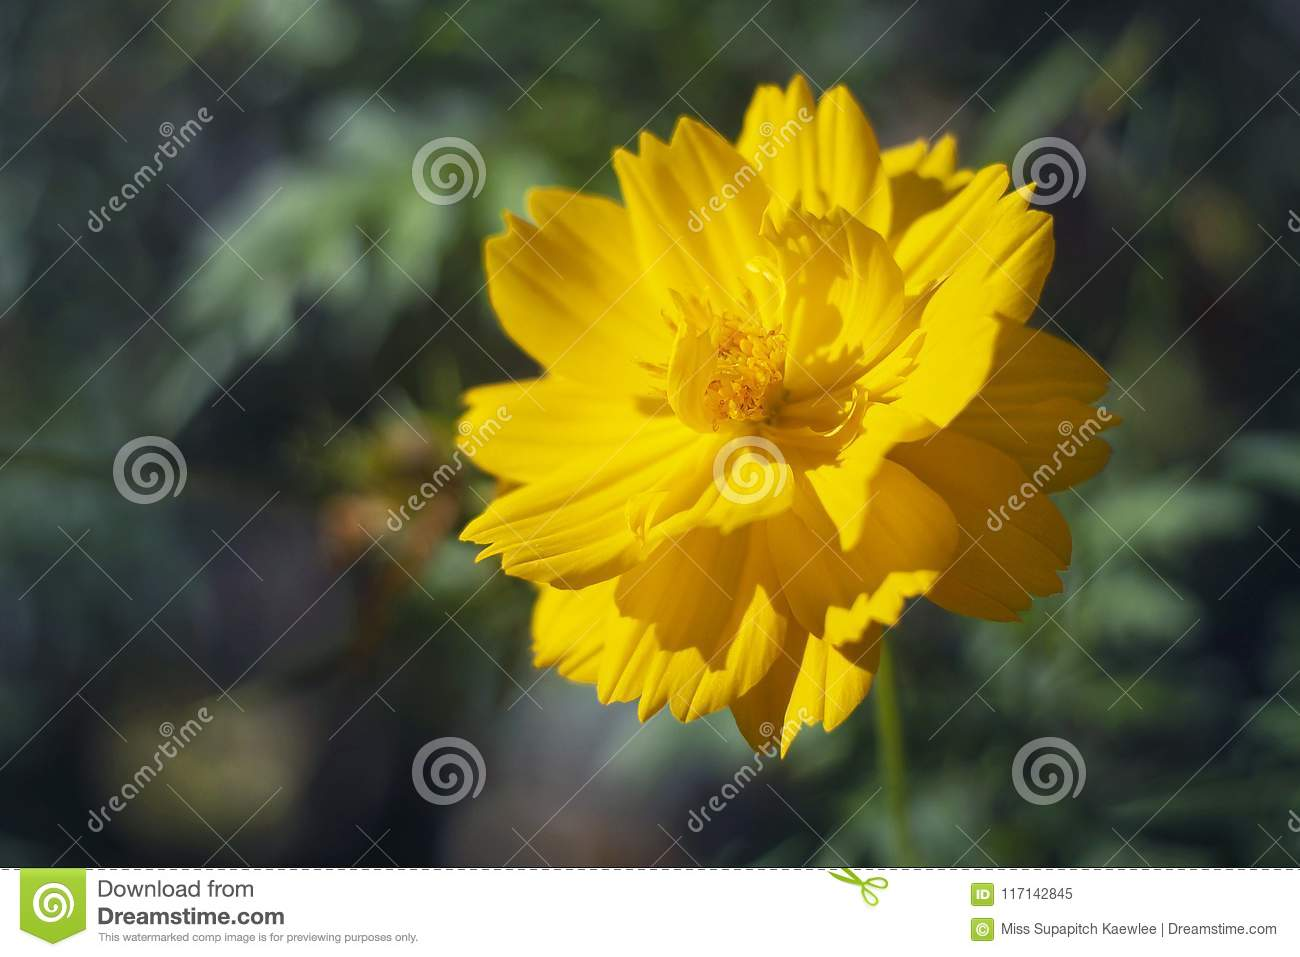 A yellowish tropical flower in the morning